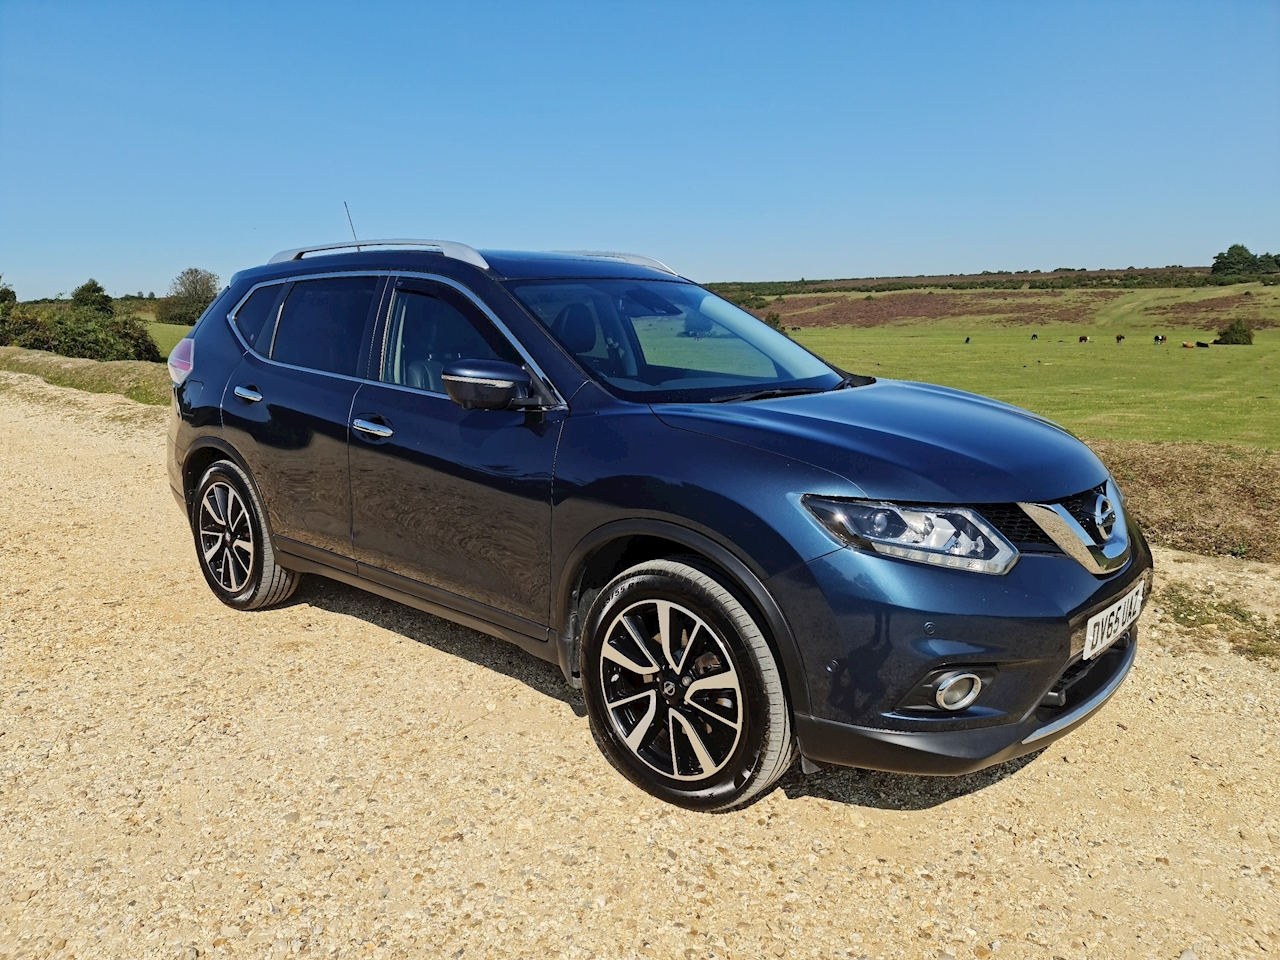 Nissan X-Trail Tekna SUV 1.6 Manual Diesel